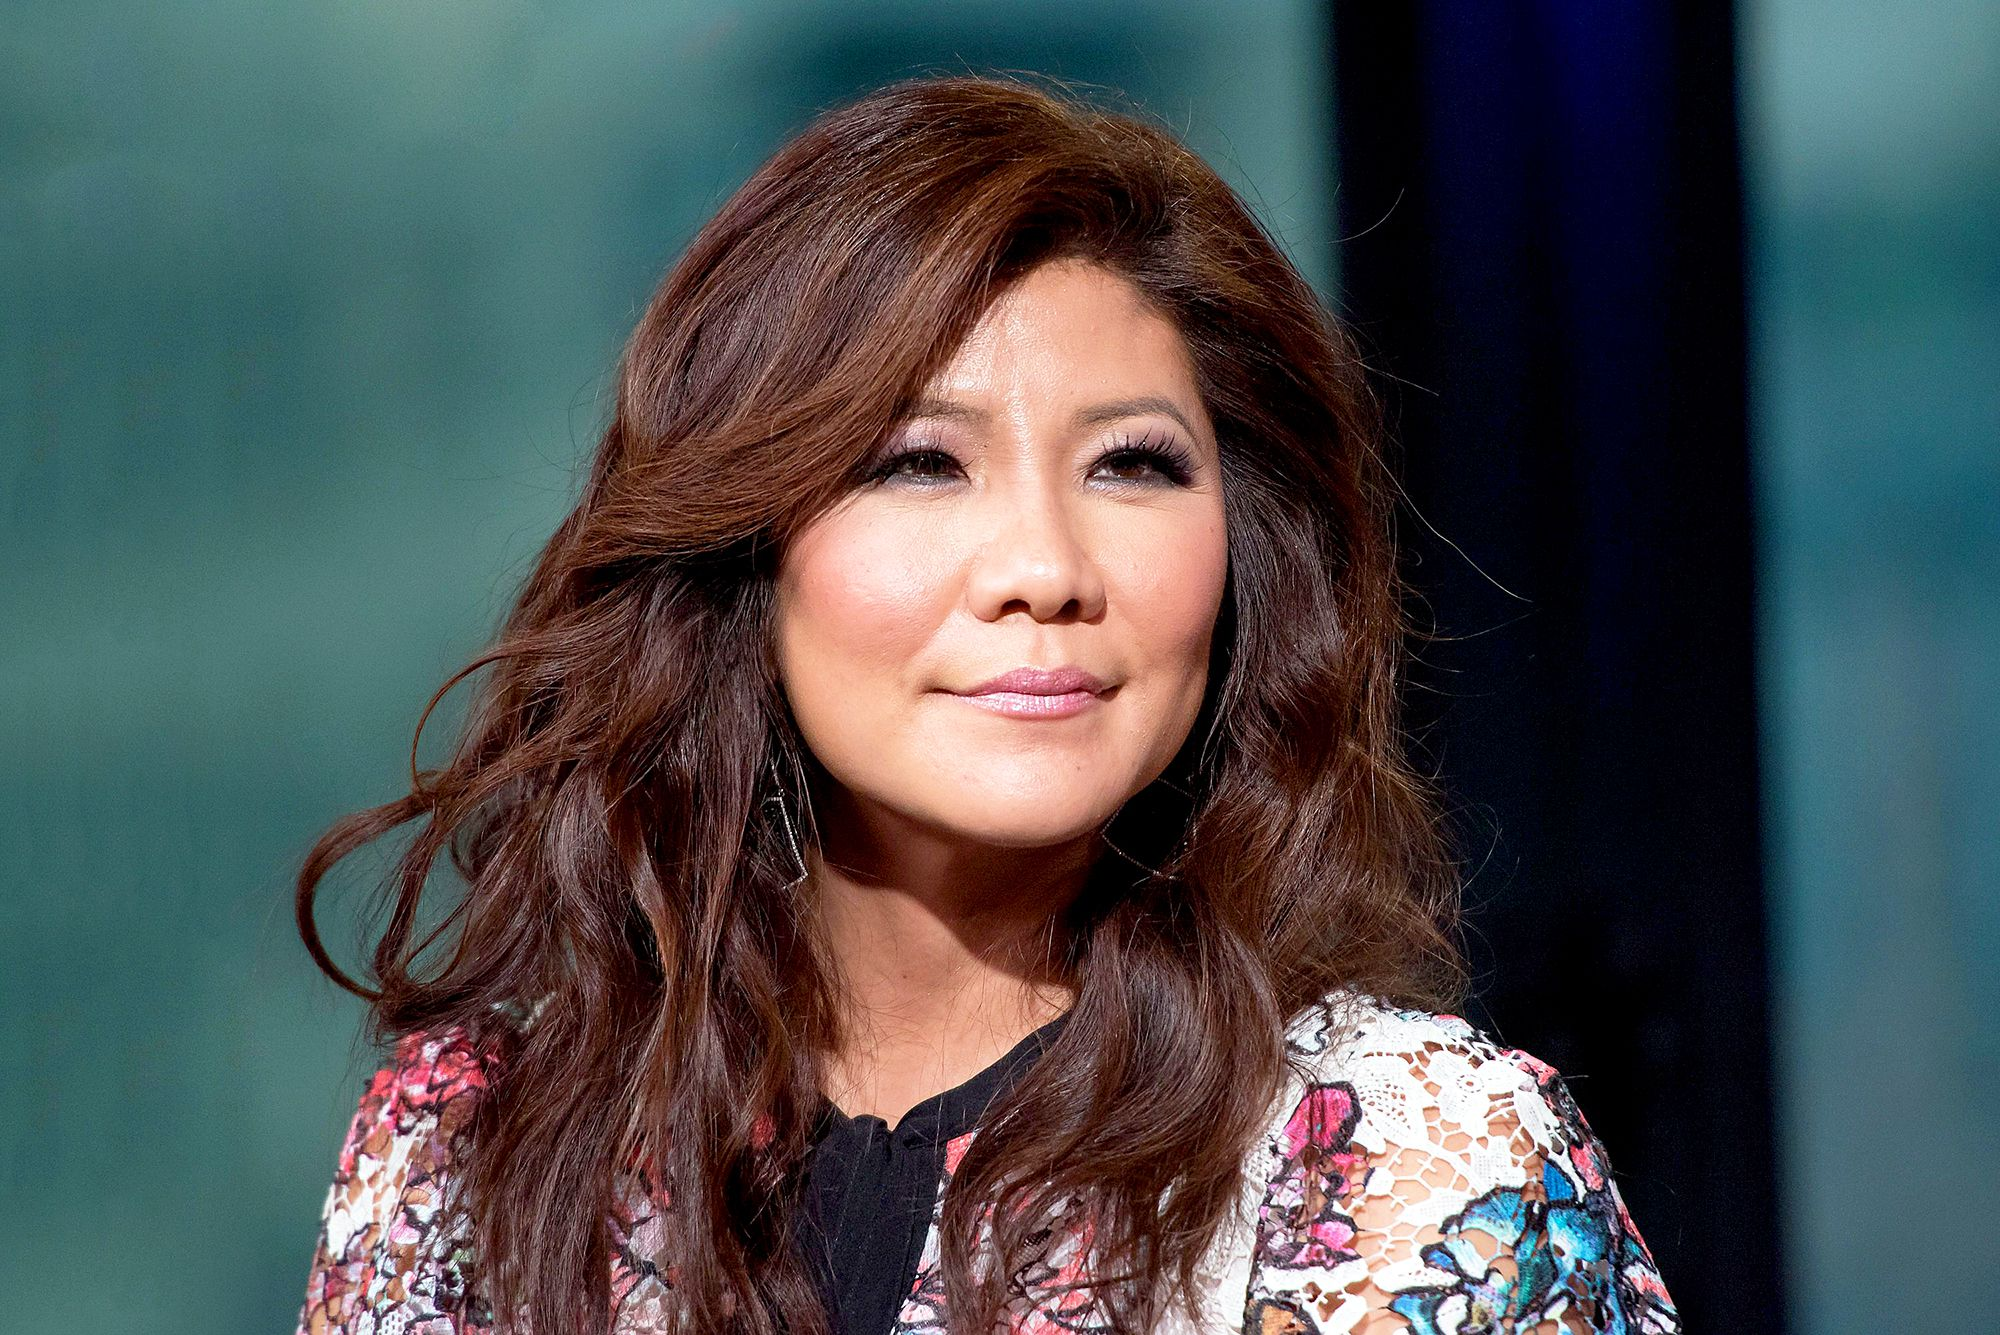 Julie Chen looking giving a slight smile